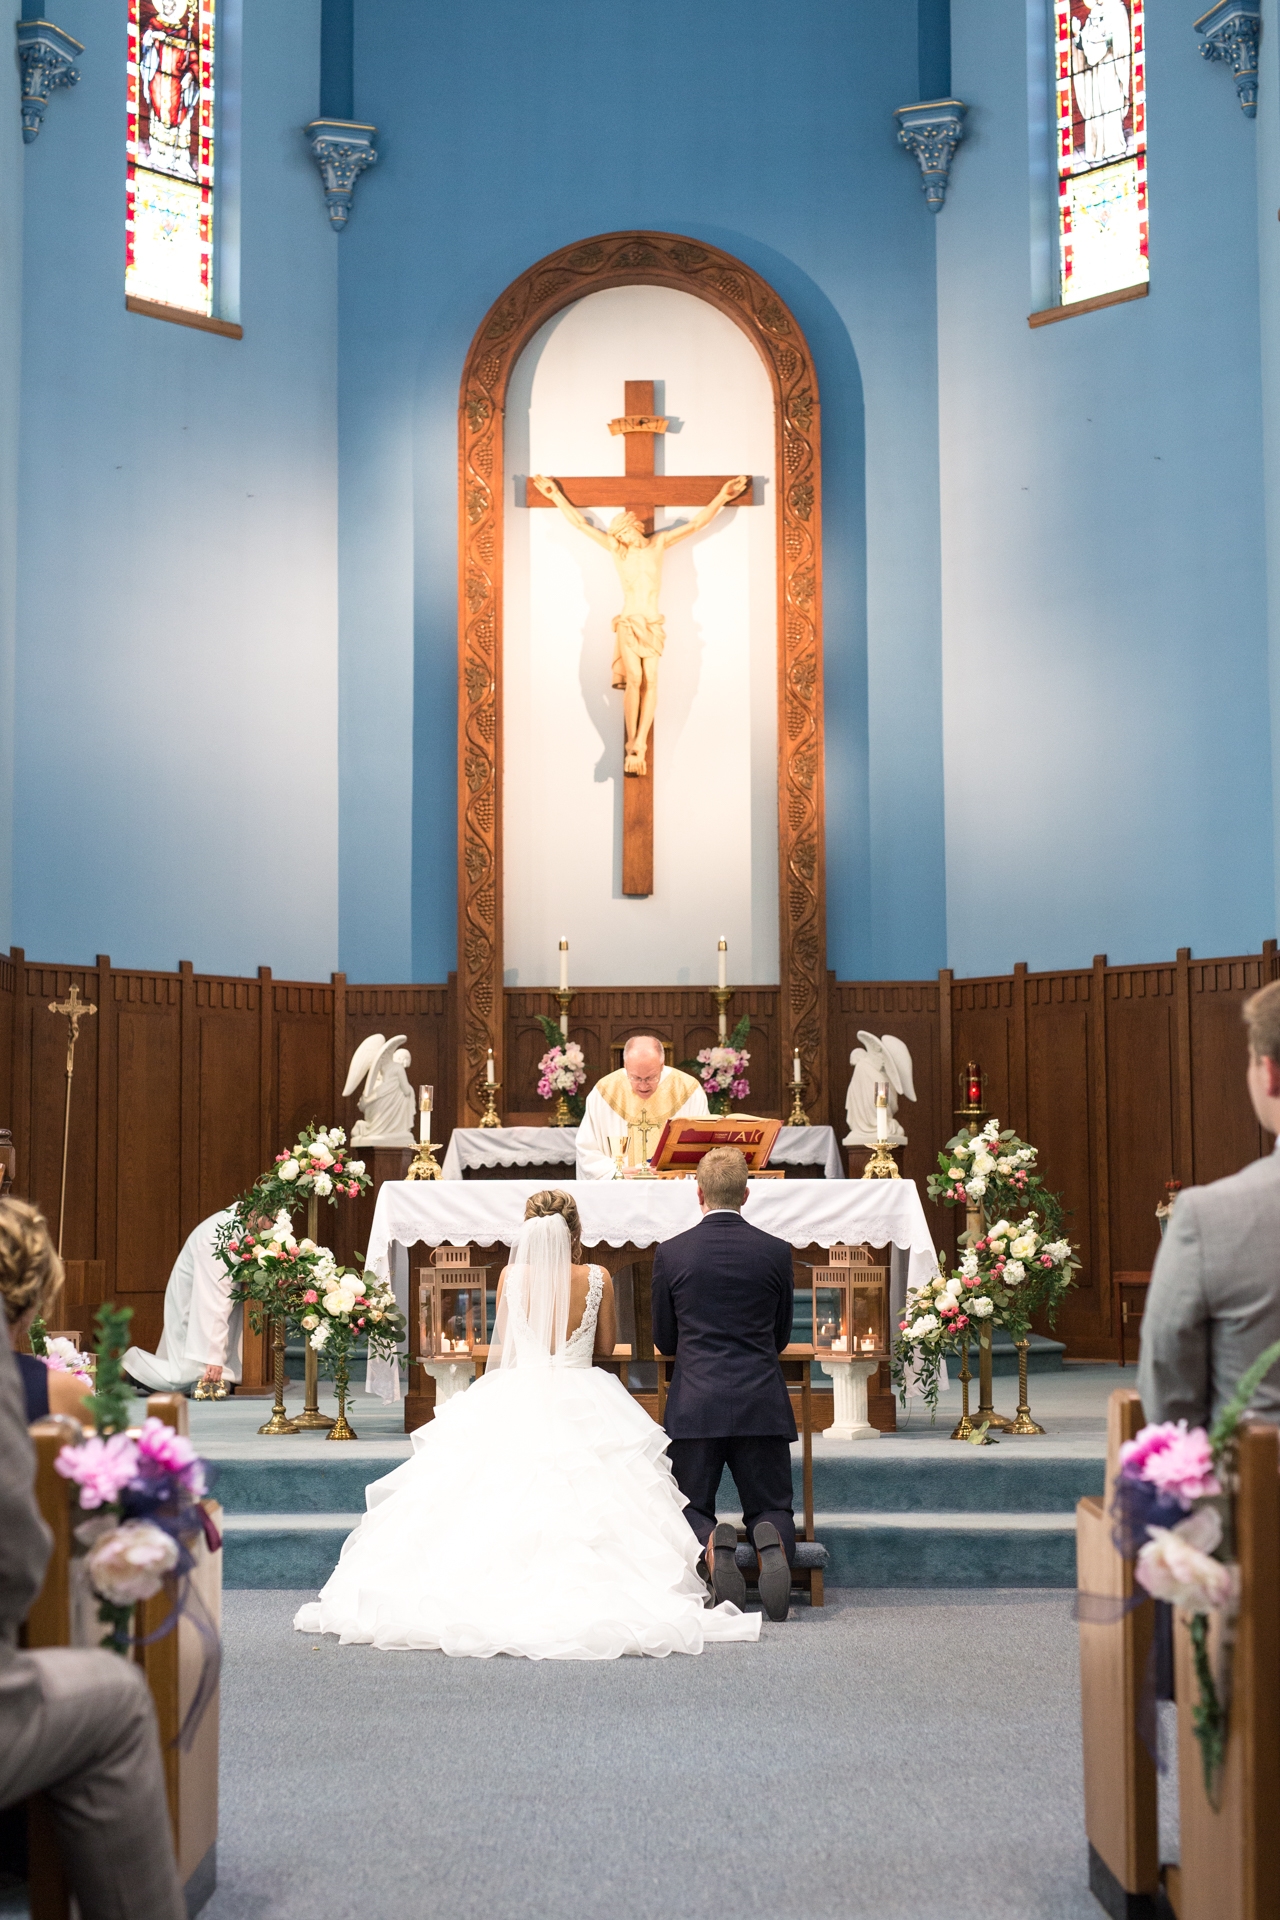 St. Patrick Catholic Church Minonk Packard Plaza Peoria Bloomington Normal Illinois Wedding Photographer Photographers Peoria Riverfront-21.jpg